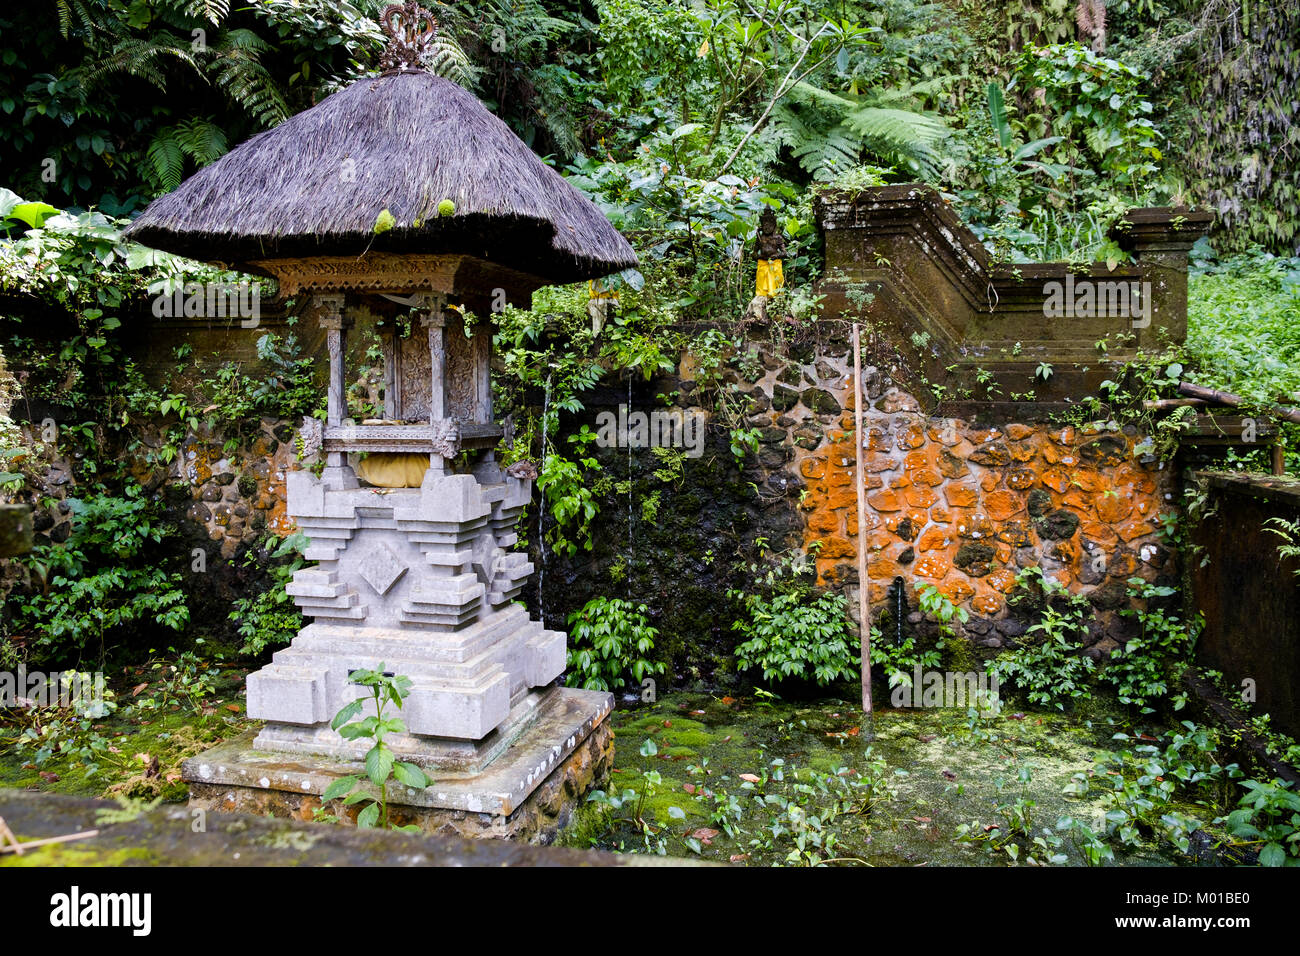 A small thatched-roof shrine within the Gunung Kawi complex in Tampaksiring, Bali, Indonesia. - Stock Image